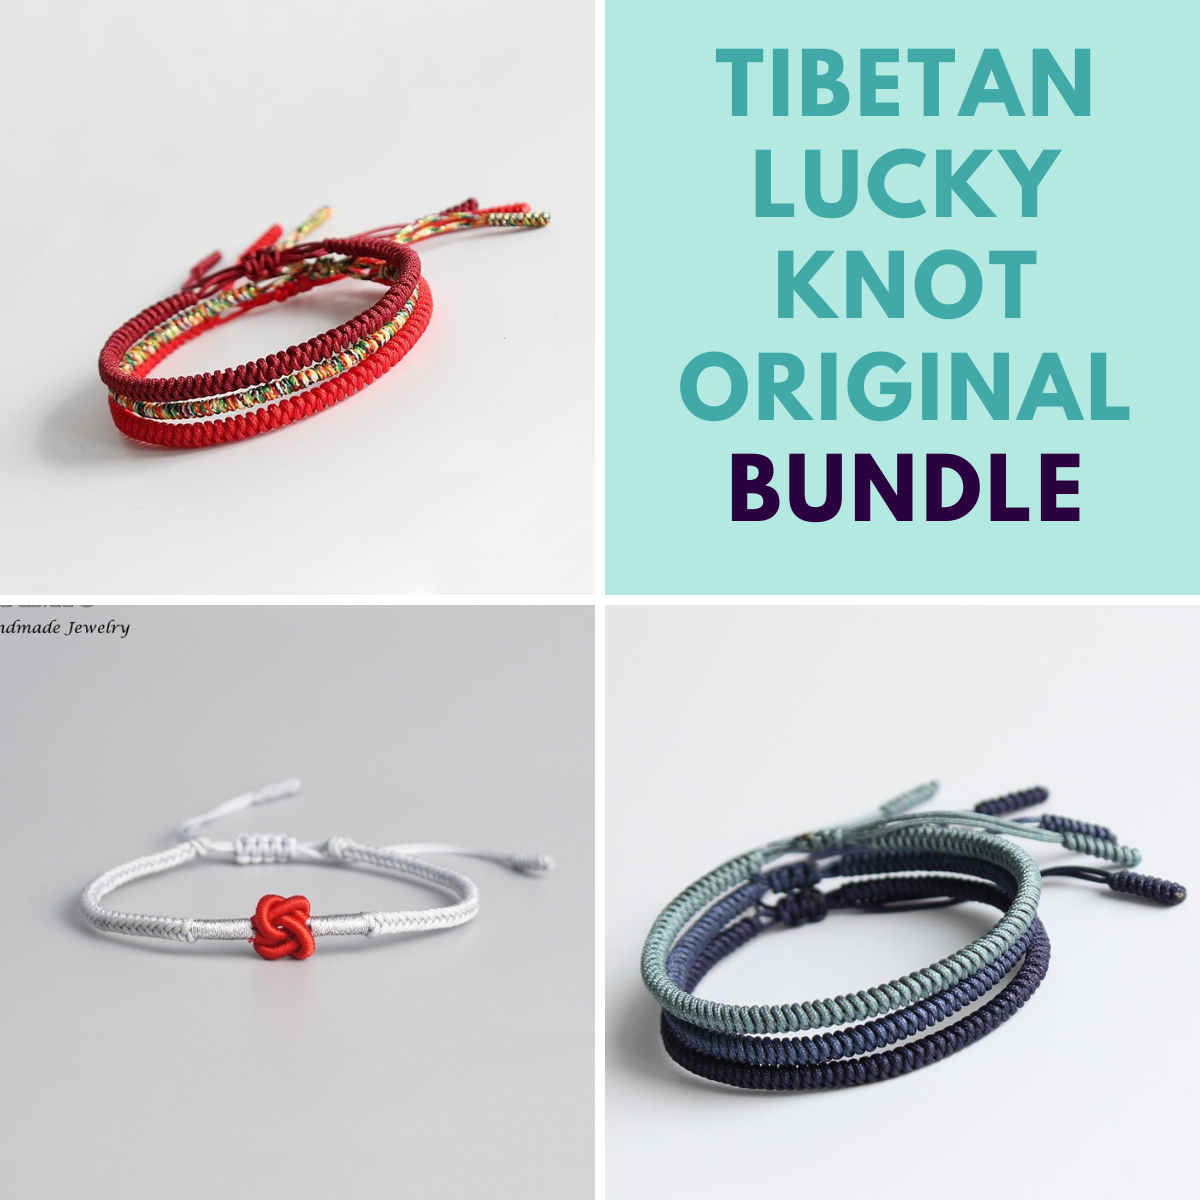 Tibetan Lucky Knot Original Bundle